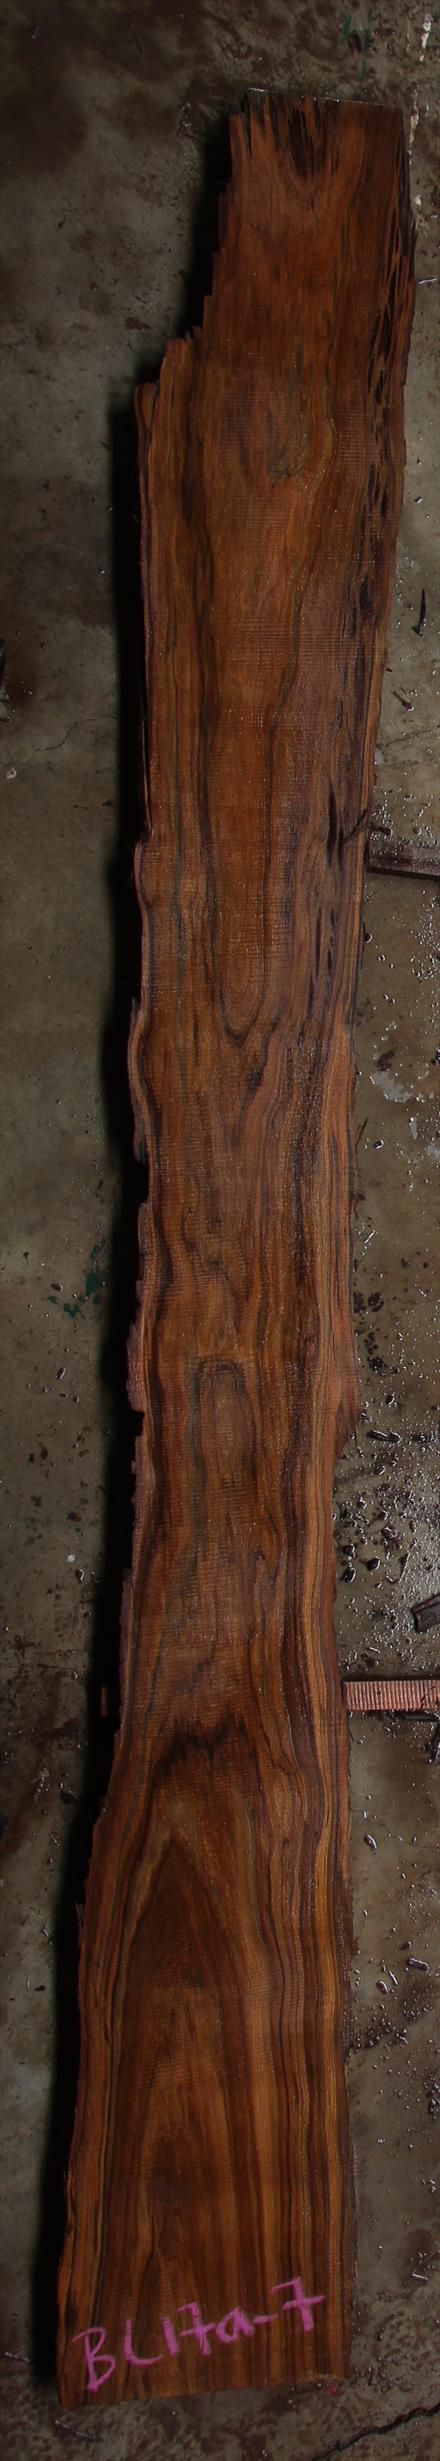 Buried Cypress Slab BC017a-07